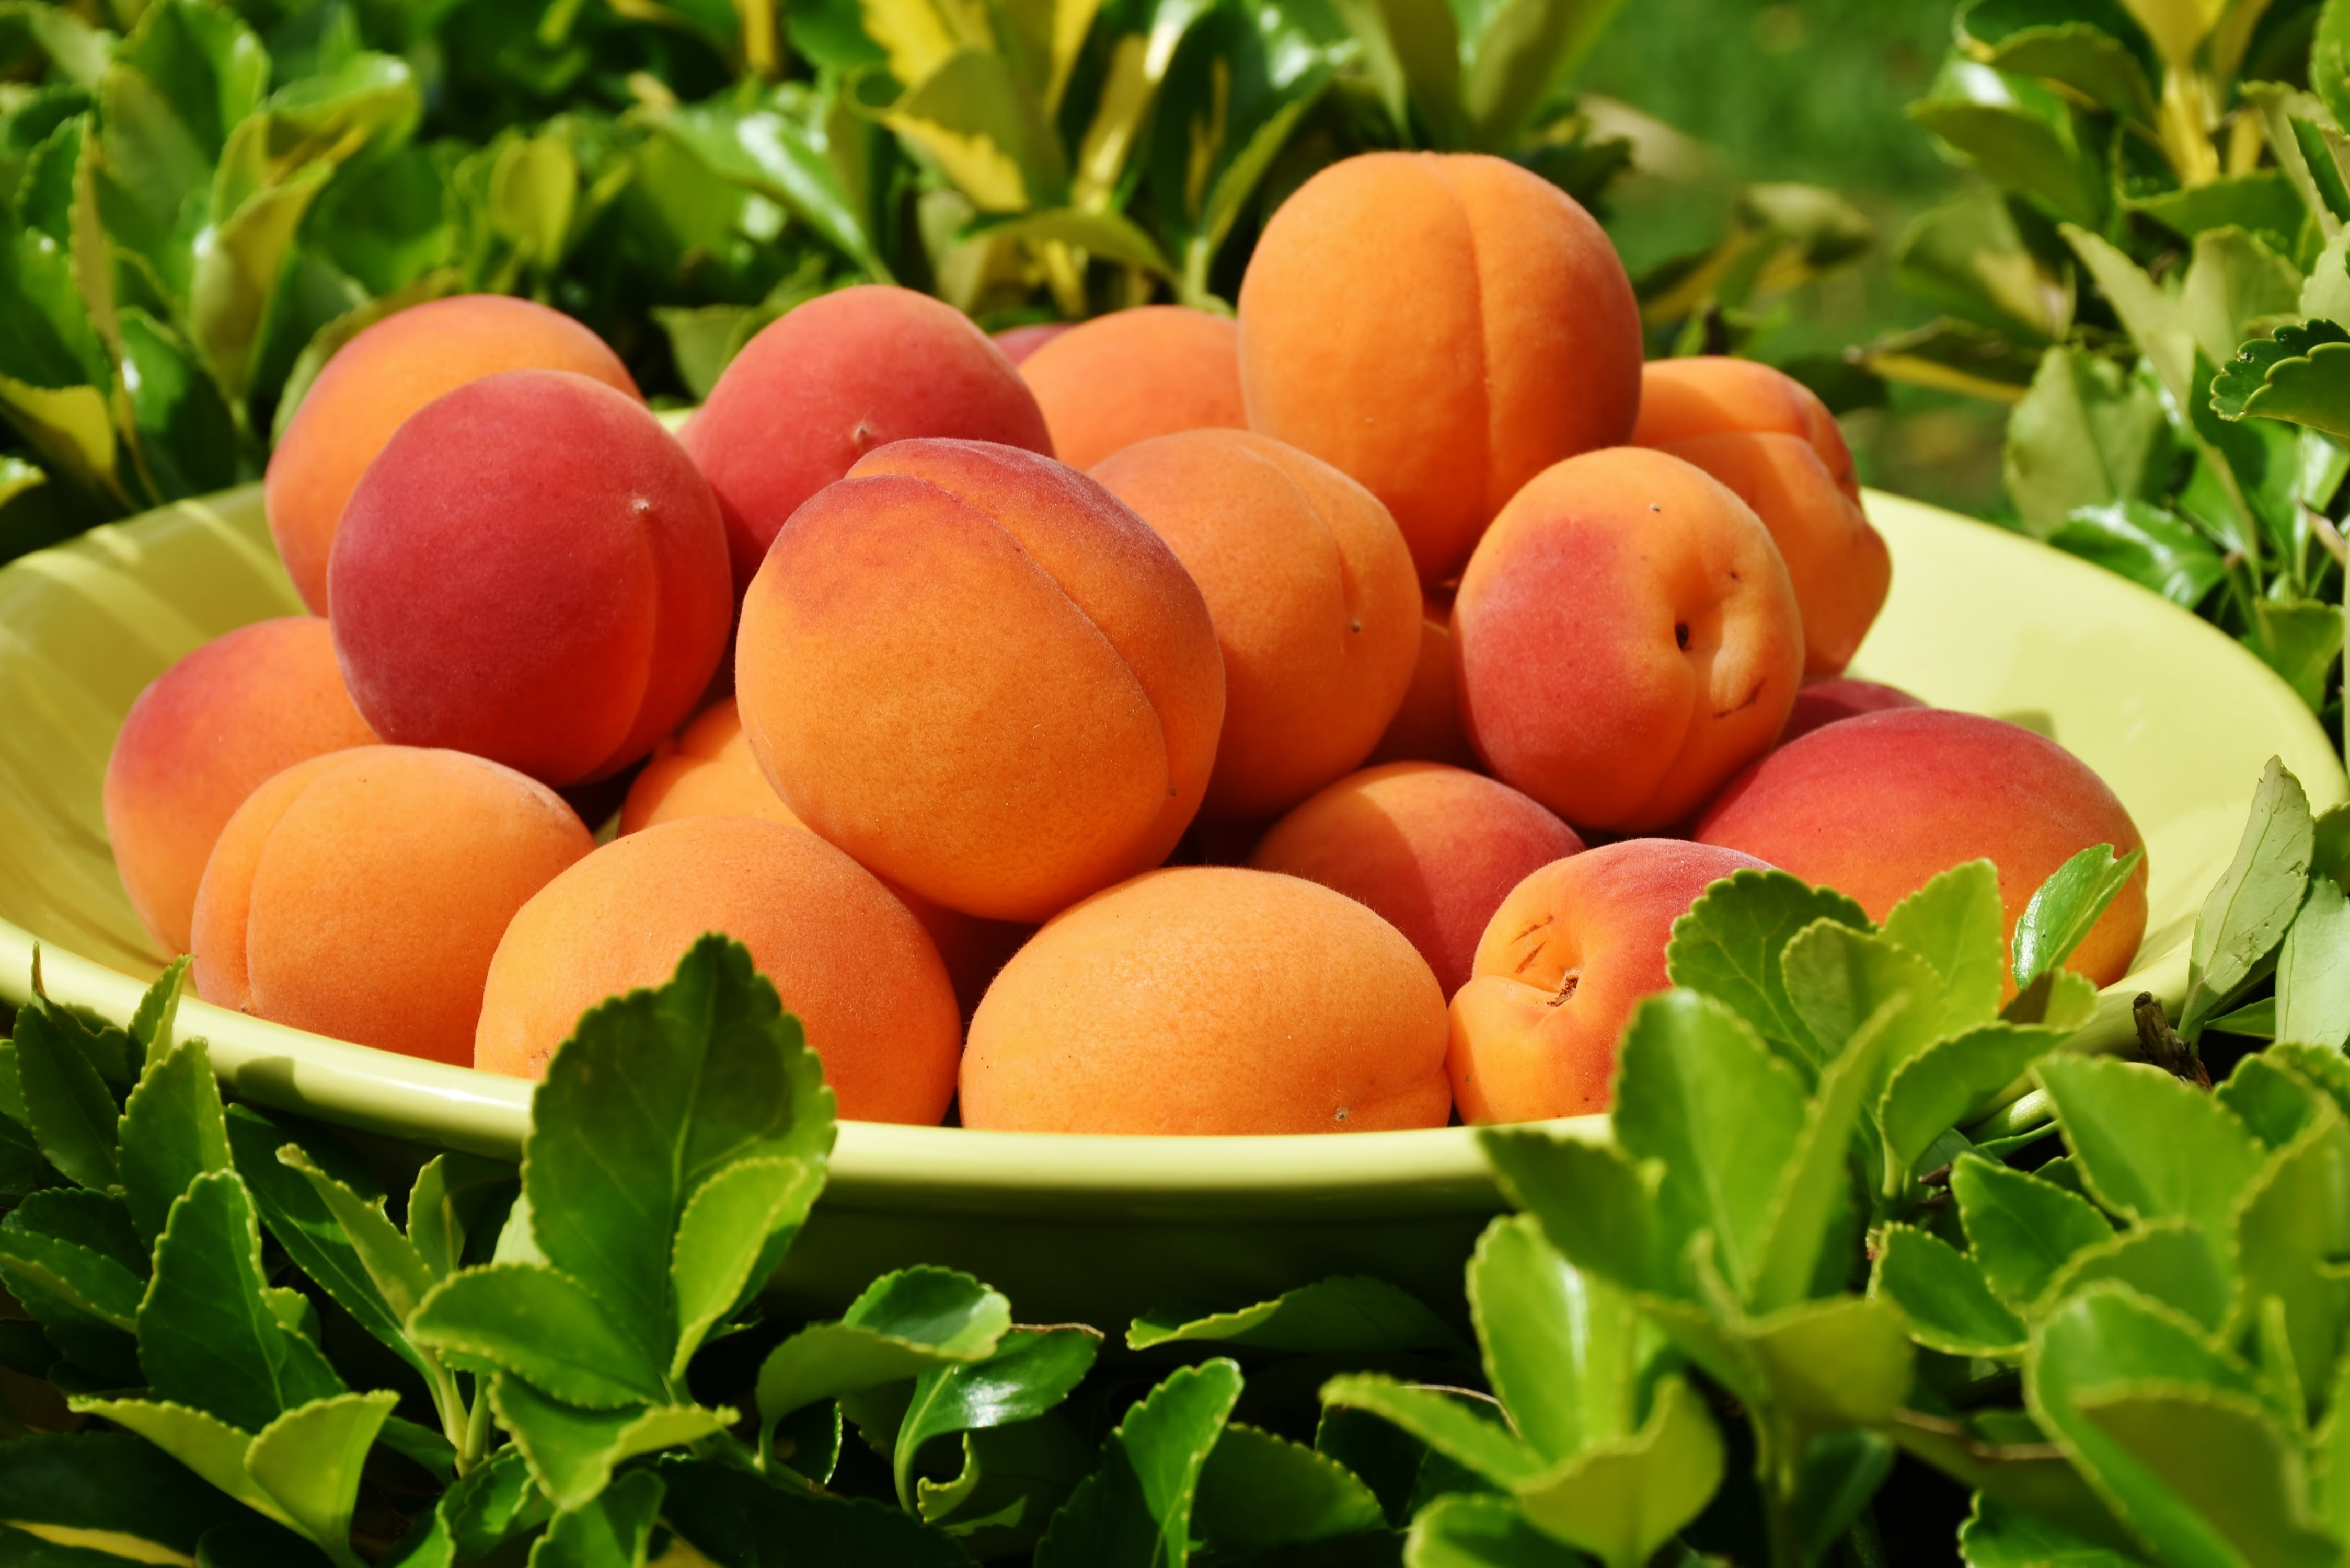 Free stock photo of food, healthy, agriculture, fruits